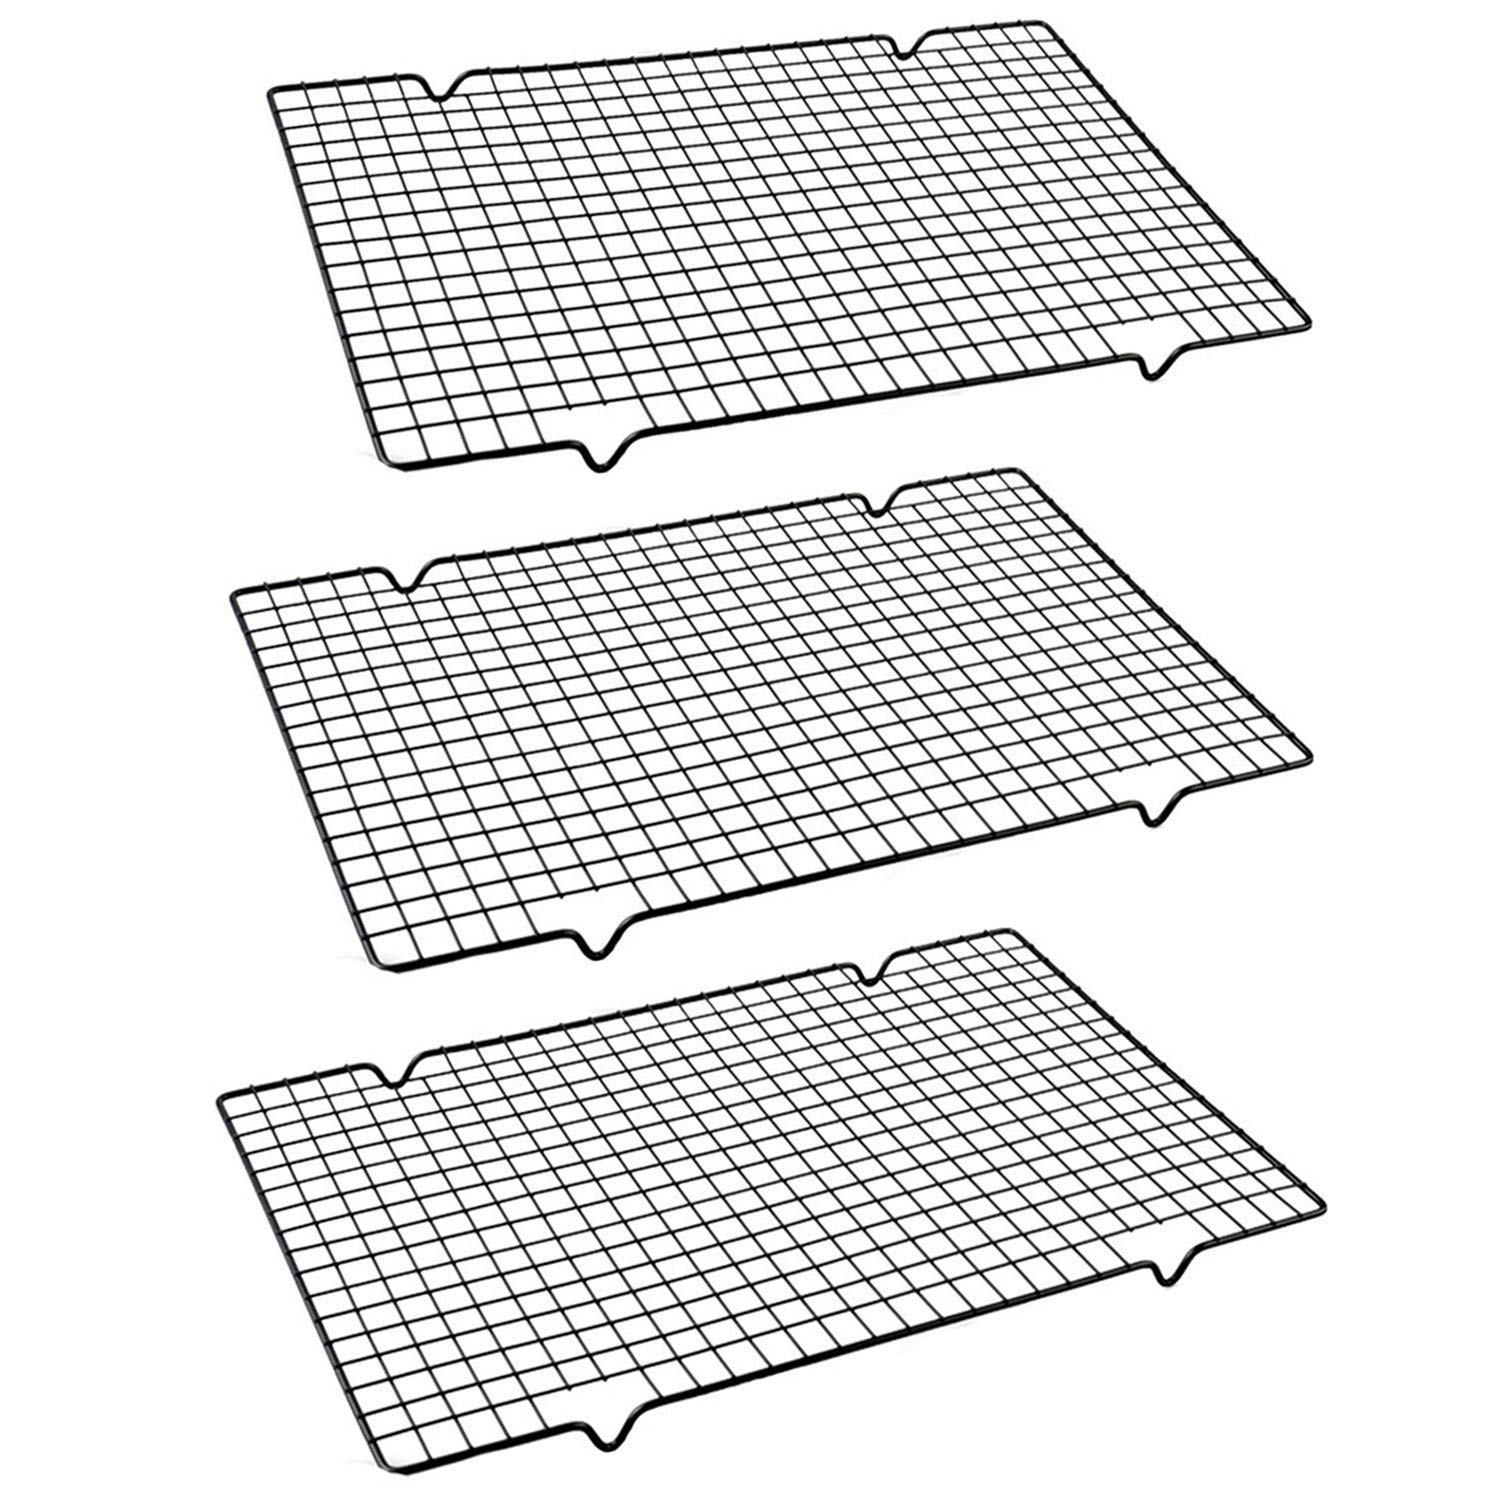 Mokpi Stainless Steel Non-Stick Oven Safe Cooling Rack, Size 16''x10'', Thick Wire Heavy Duty Commercial Quality Wire Rack (3 pack)